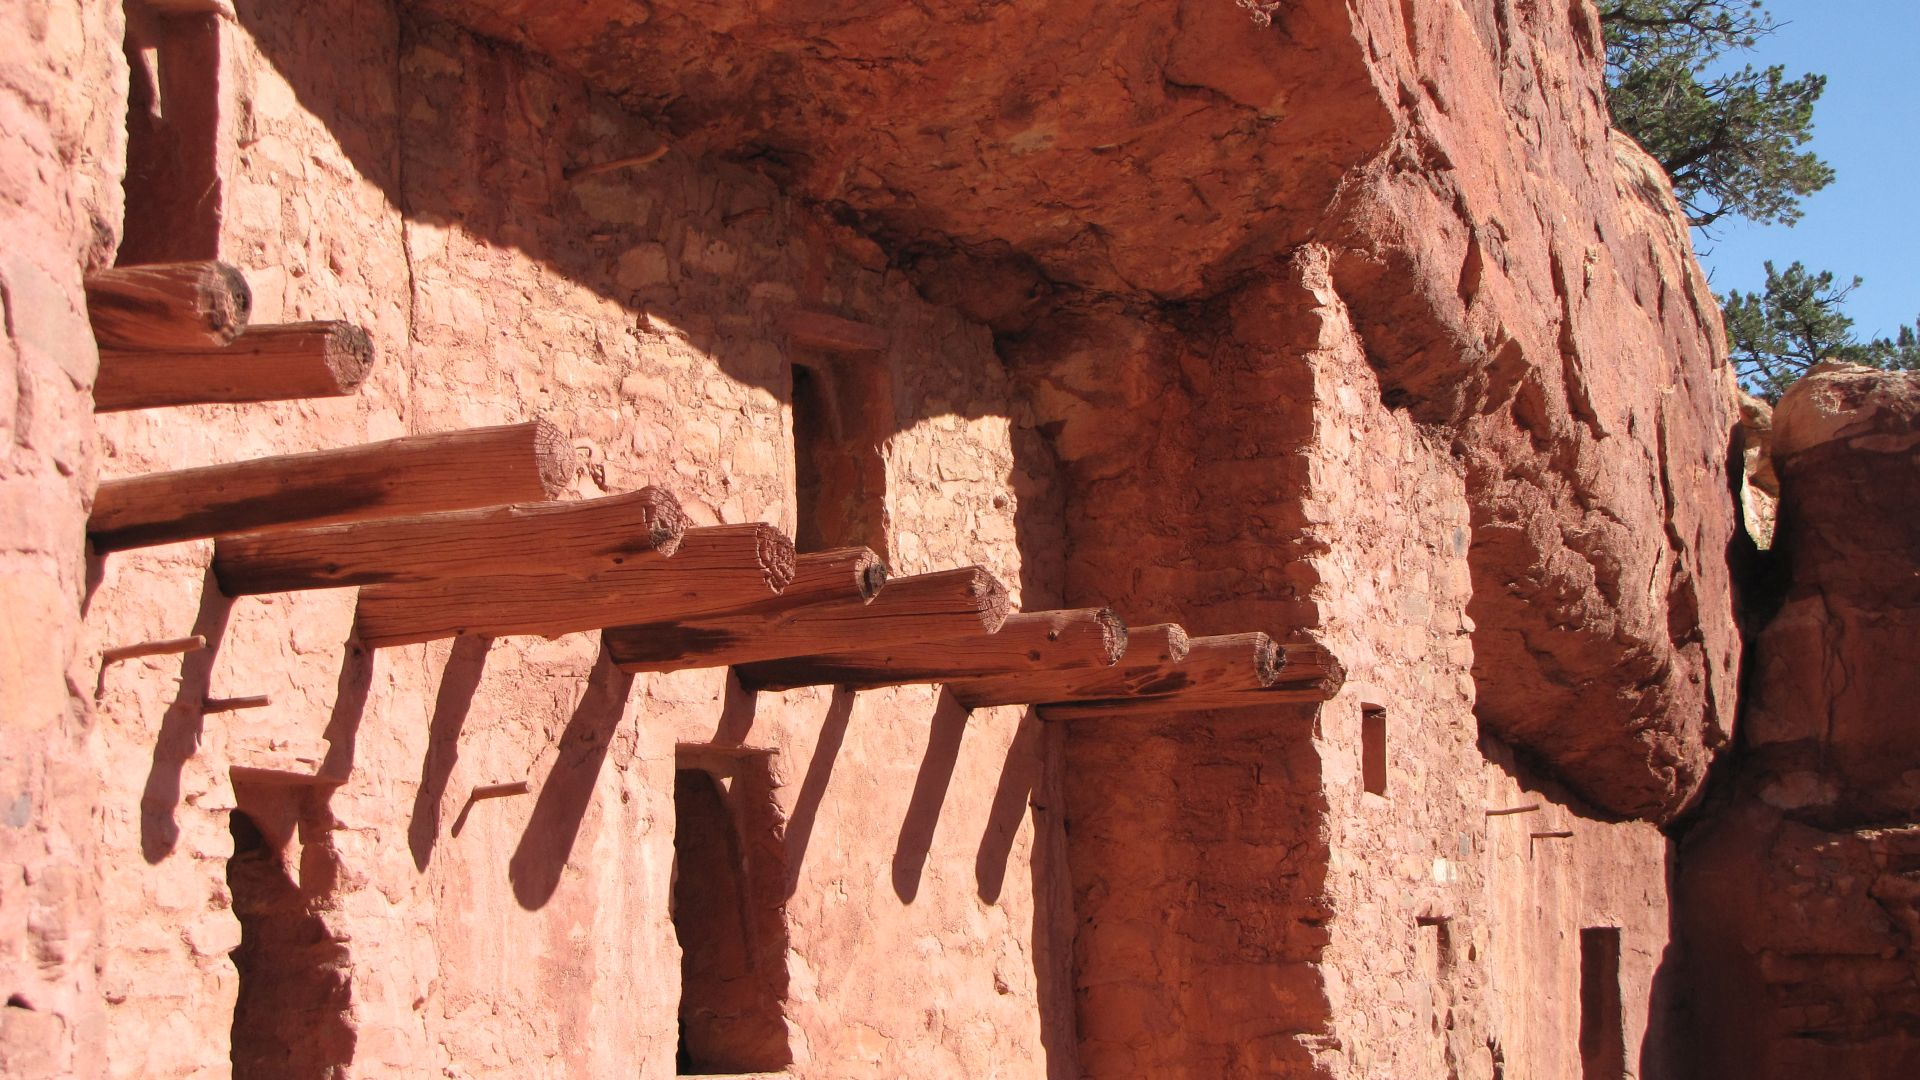 Cliff dwellings, nr Manitou Springs, CO, USA - Does this work?